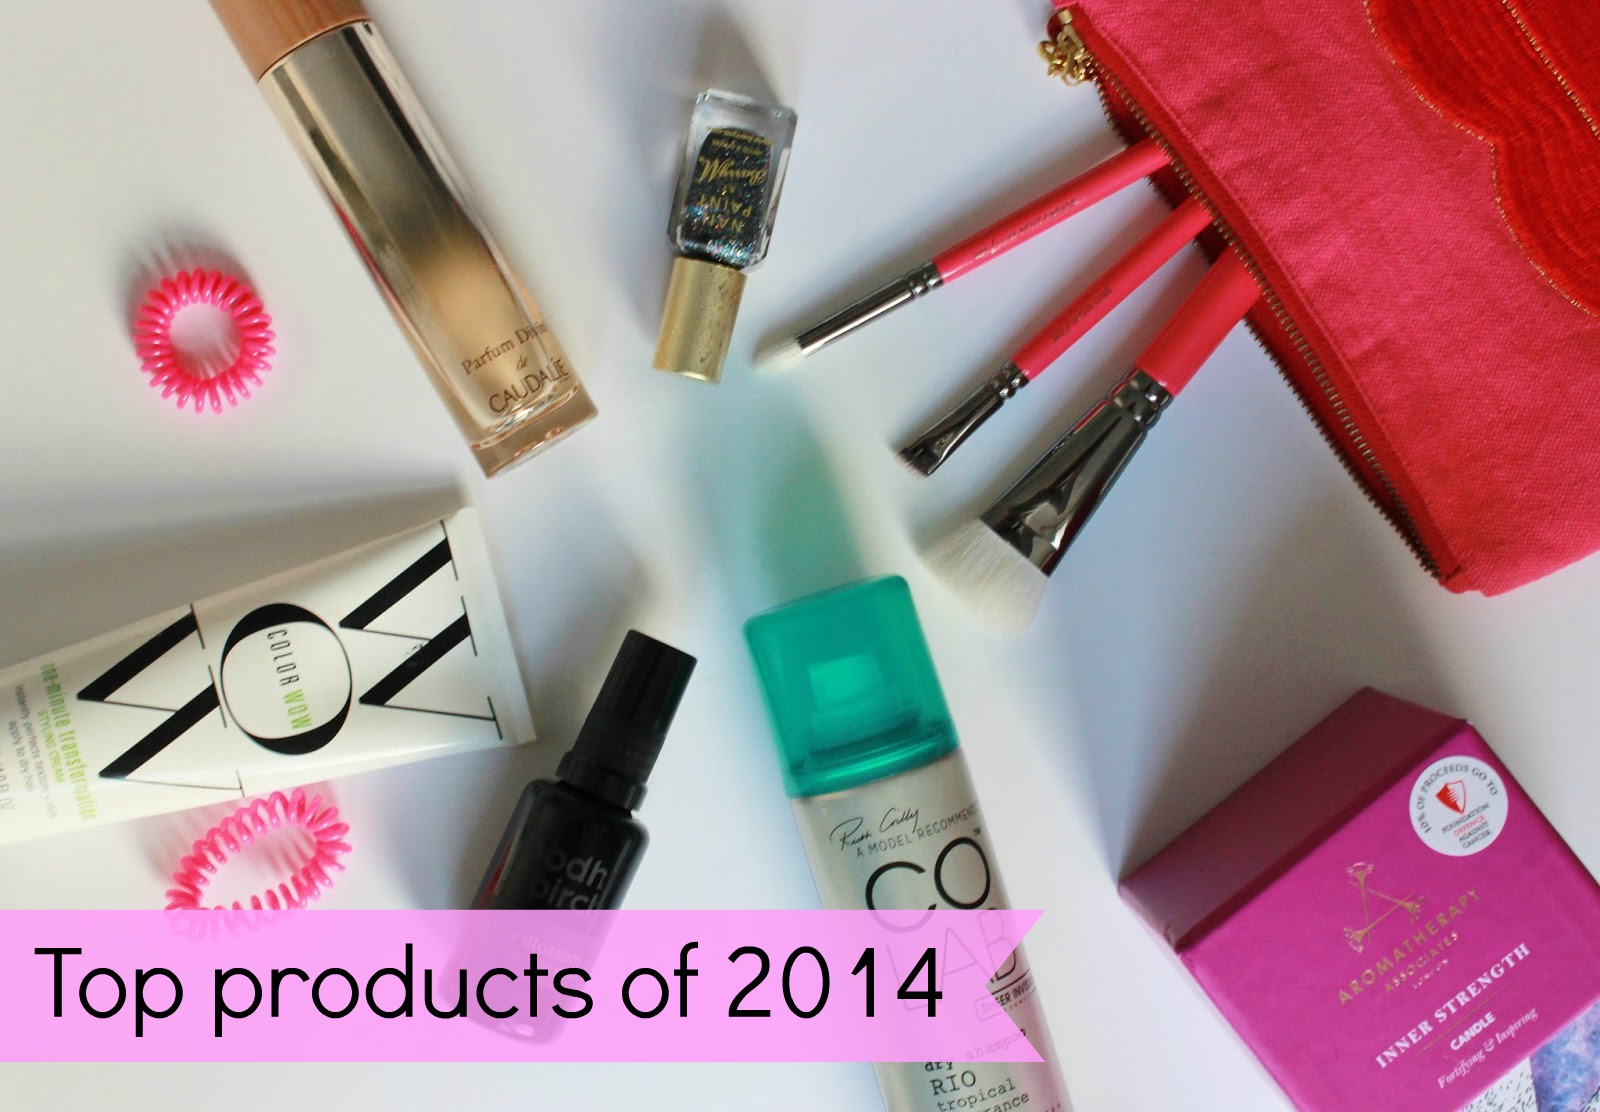 Top products of 2014 - hair, nails and the rest